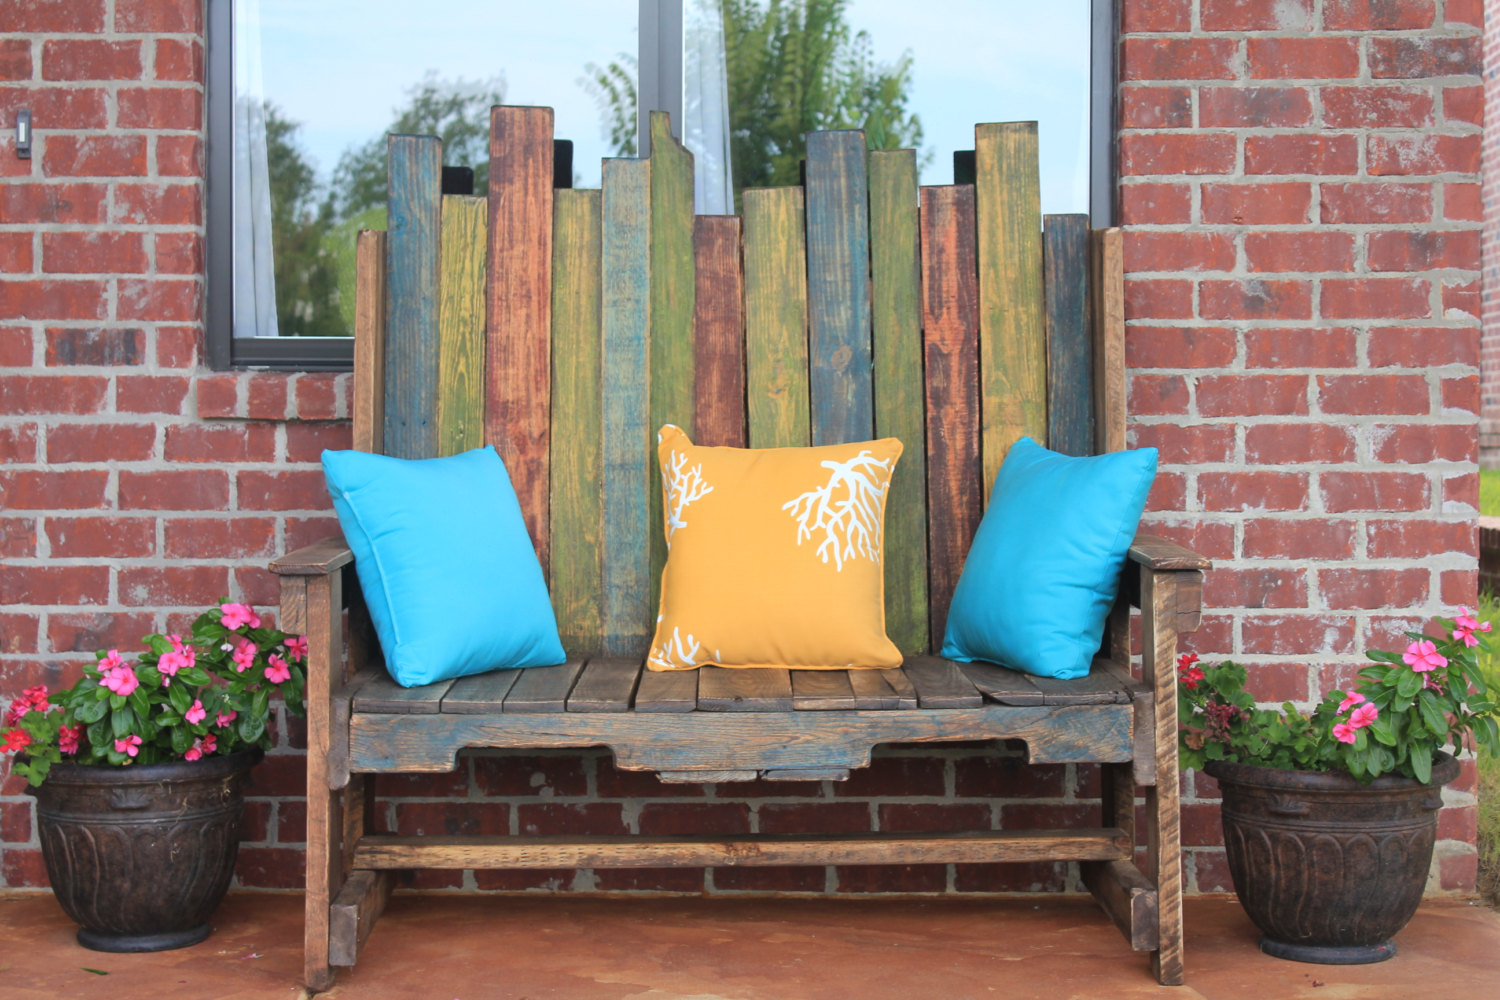 59 Incredibly Simple Rustic Décor Ideas That Can Make Your: 21 Amazing Outdoor Bench Ideas